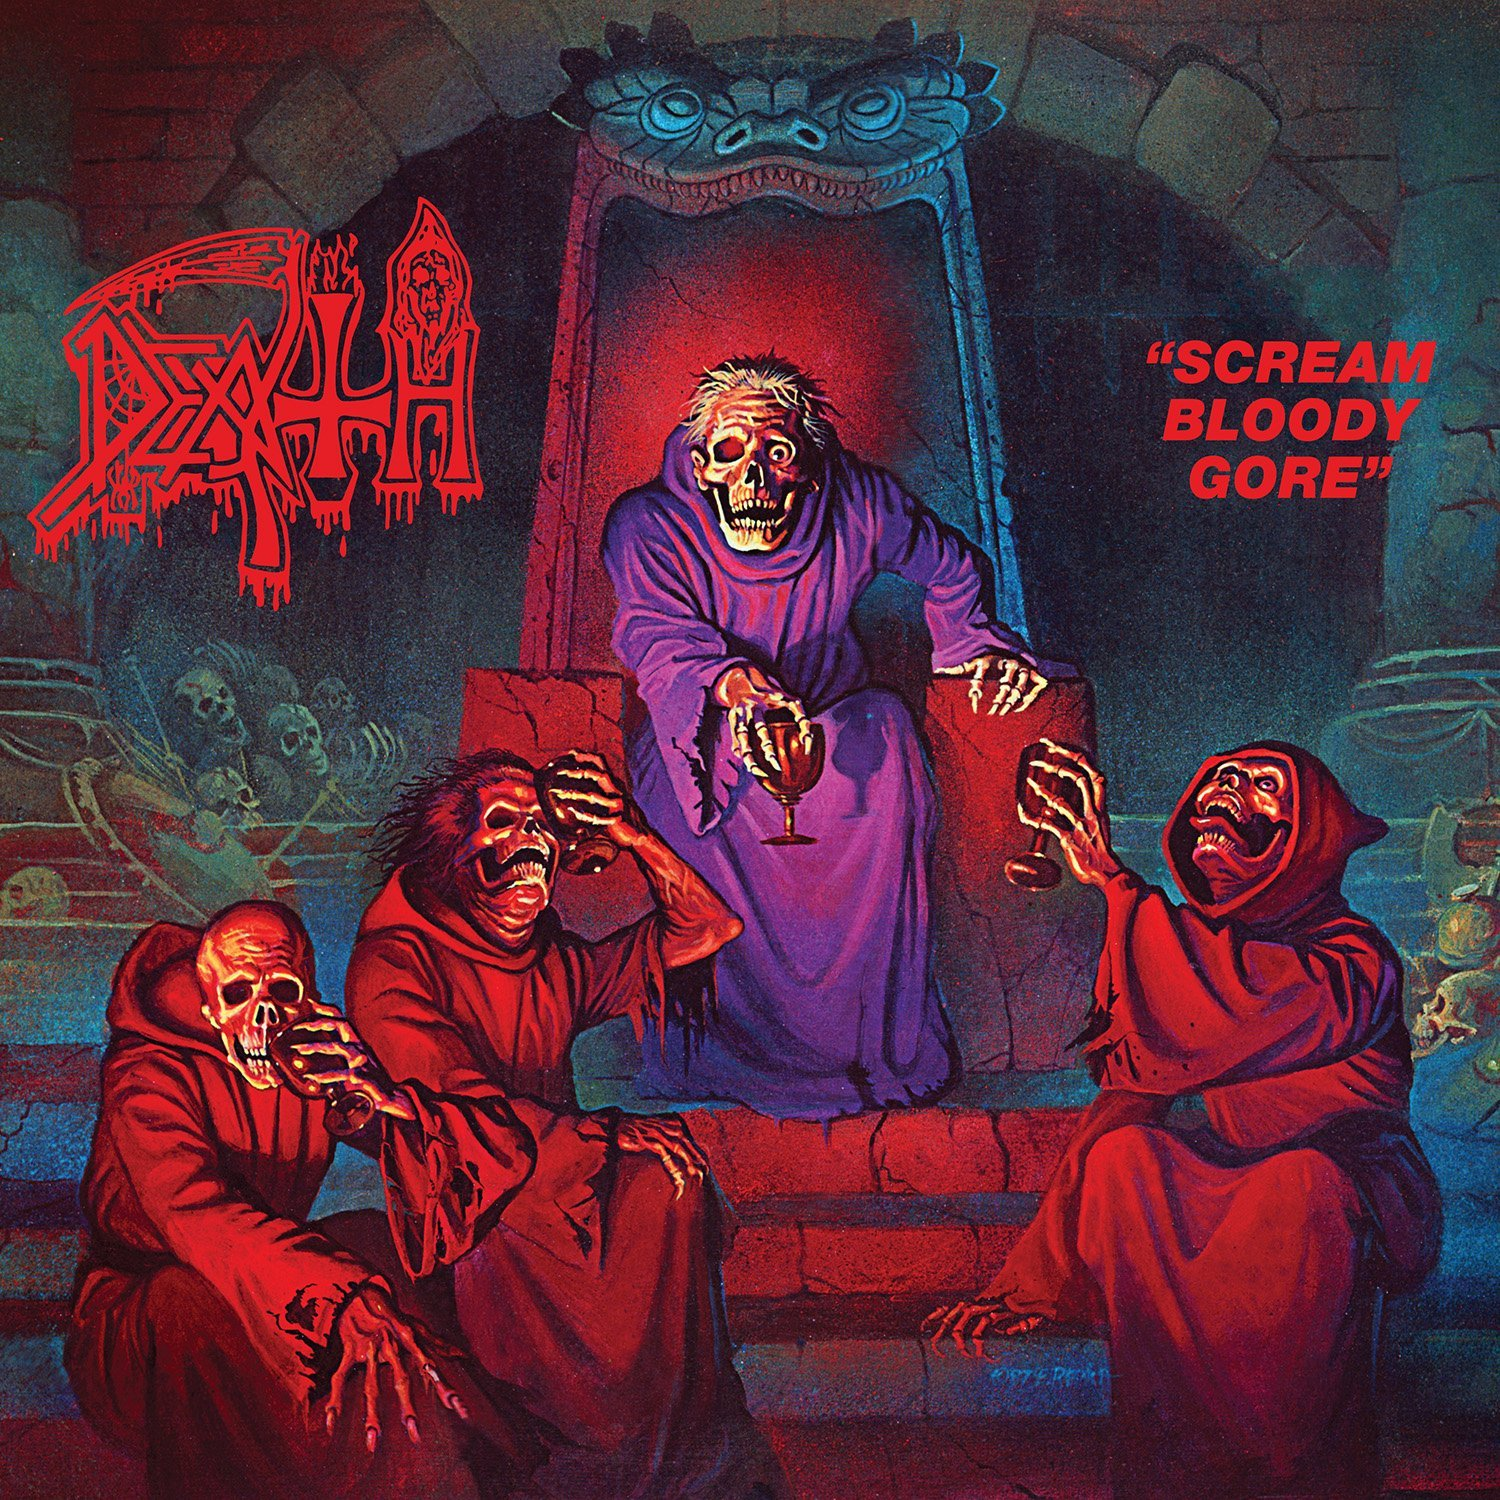 Scream Bloody Gore (Ed. Lda Original Recording Remastered 2016)